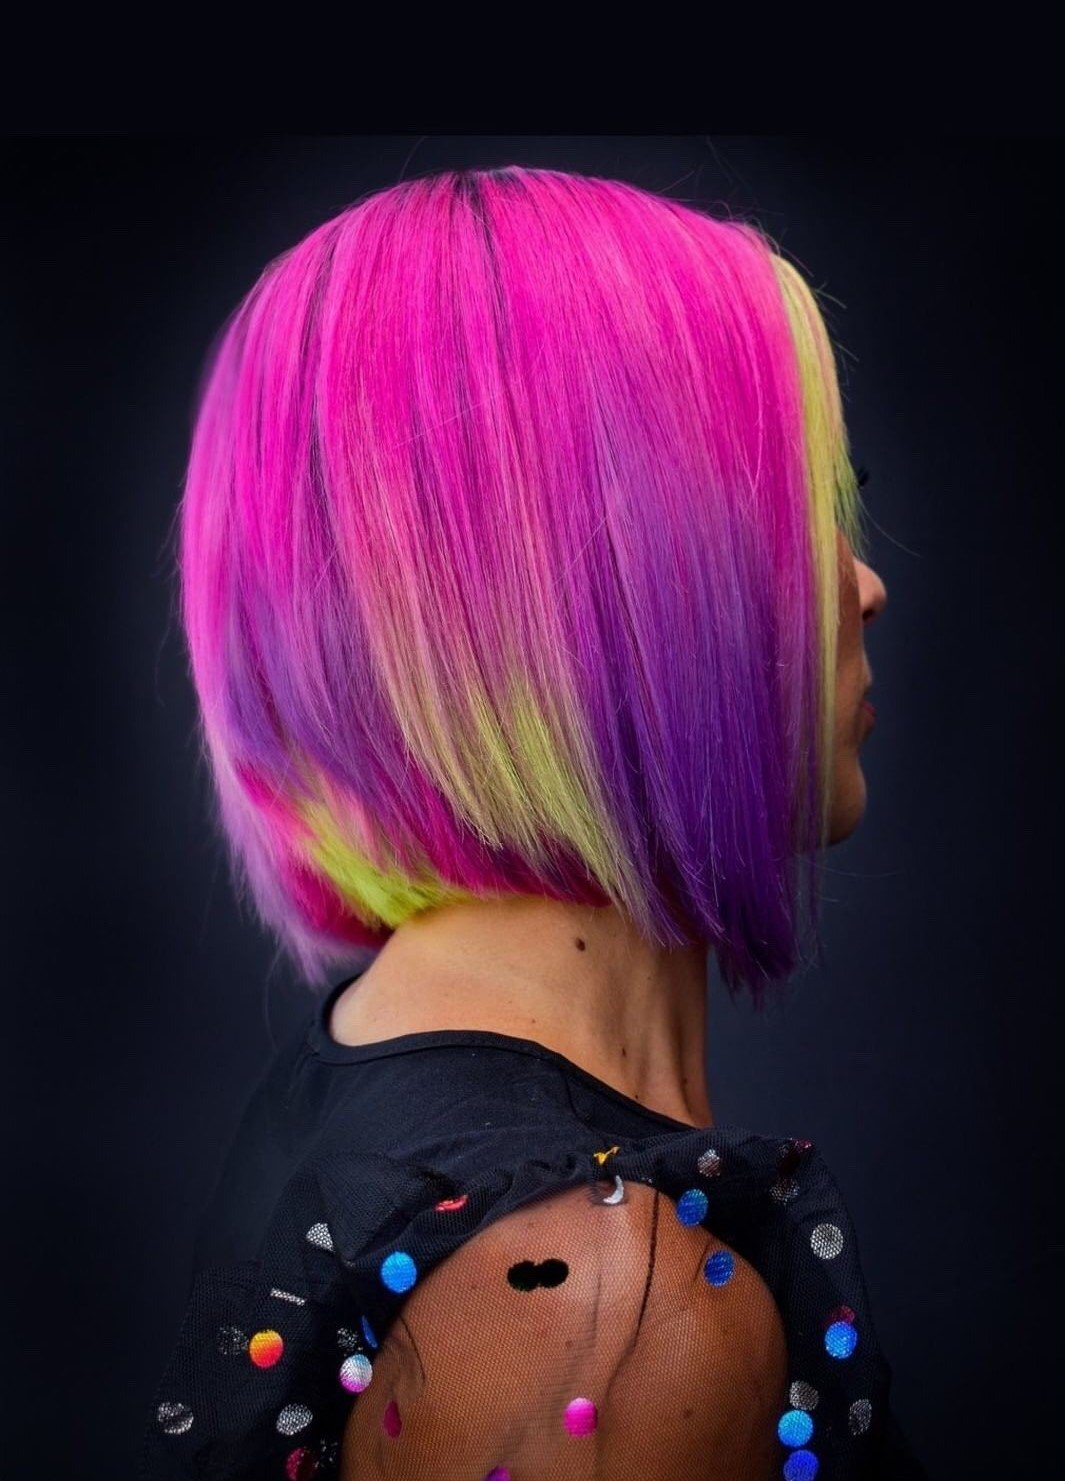 Removing direct dyes from compromised hair is no easy task, but Diana Giannini @lzhouseofhair relies on Malibu C's Direct Dye Lifter to ensure old color residue is removed while preserving the hair's integrity.  - @lzhouseofhair